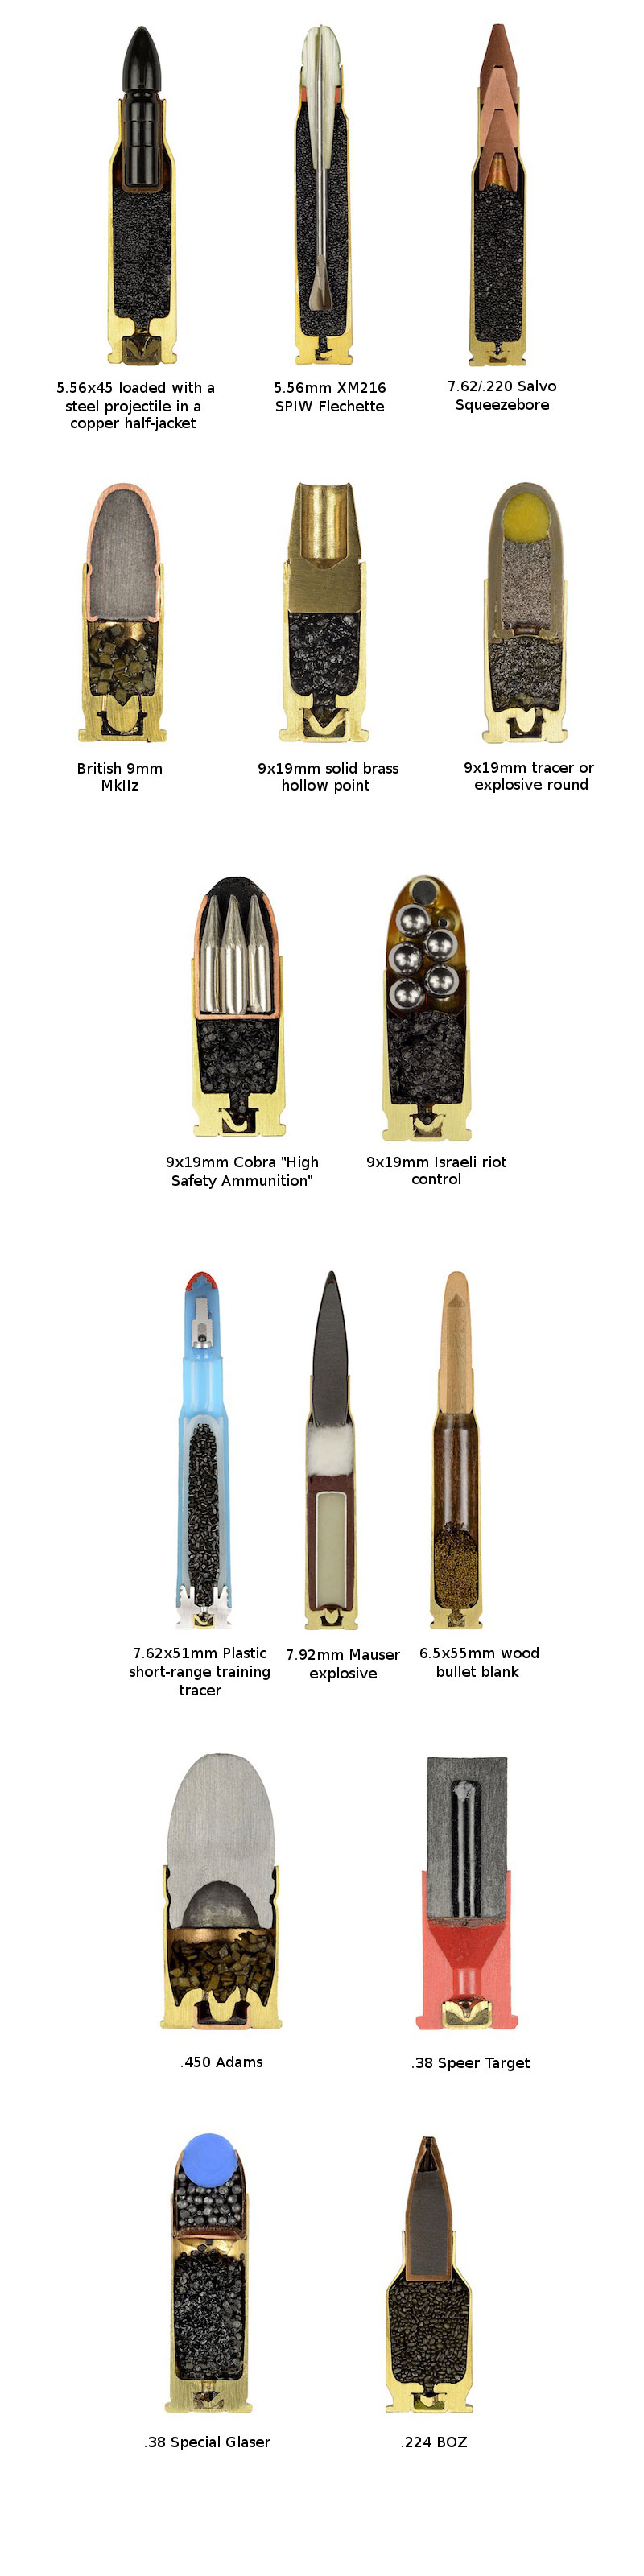 cross sections of ammo sabine pearlman (7)